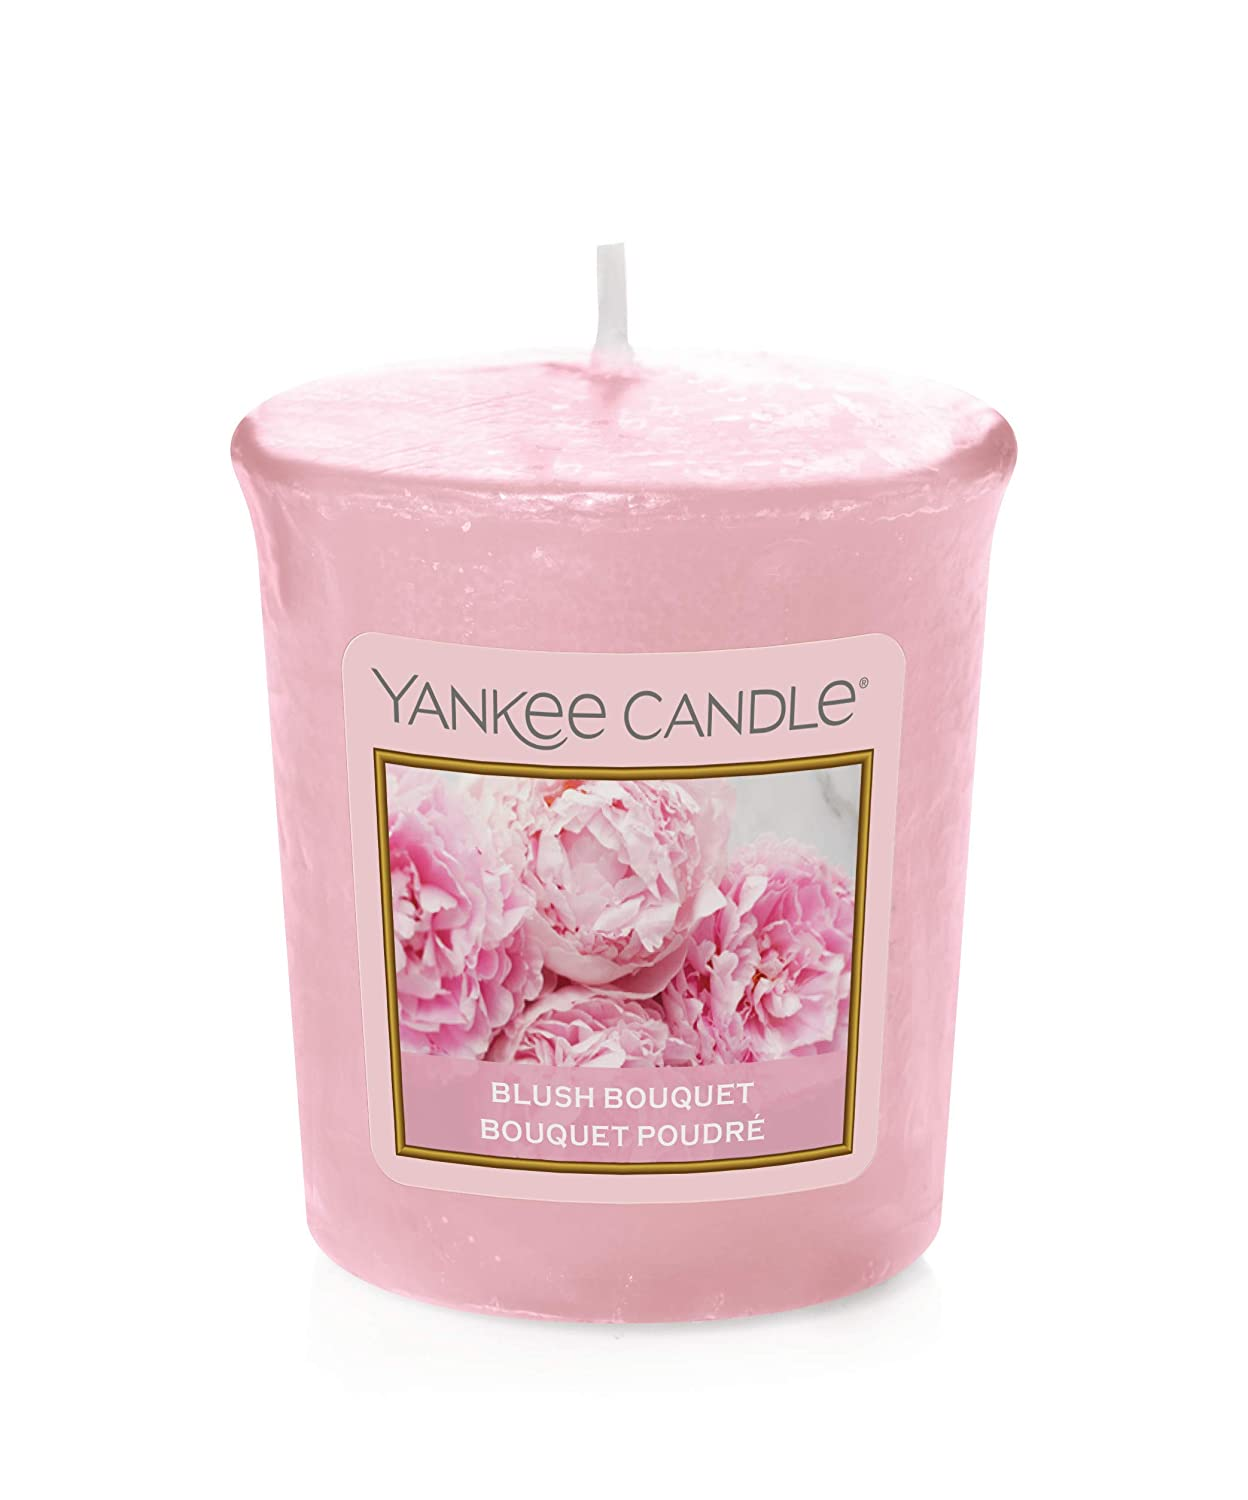 Yankee Candle Blush Bouquet - Votive Candle